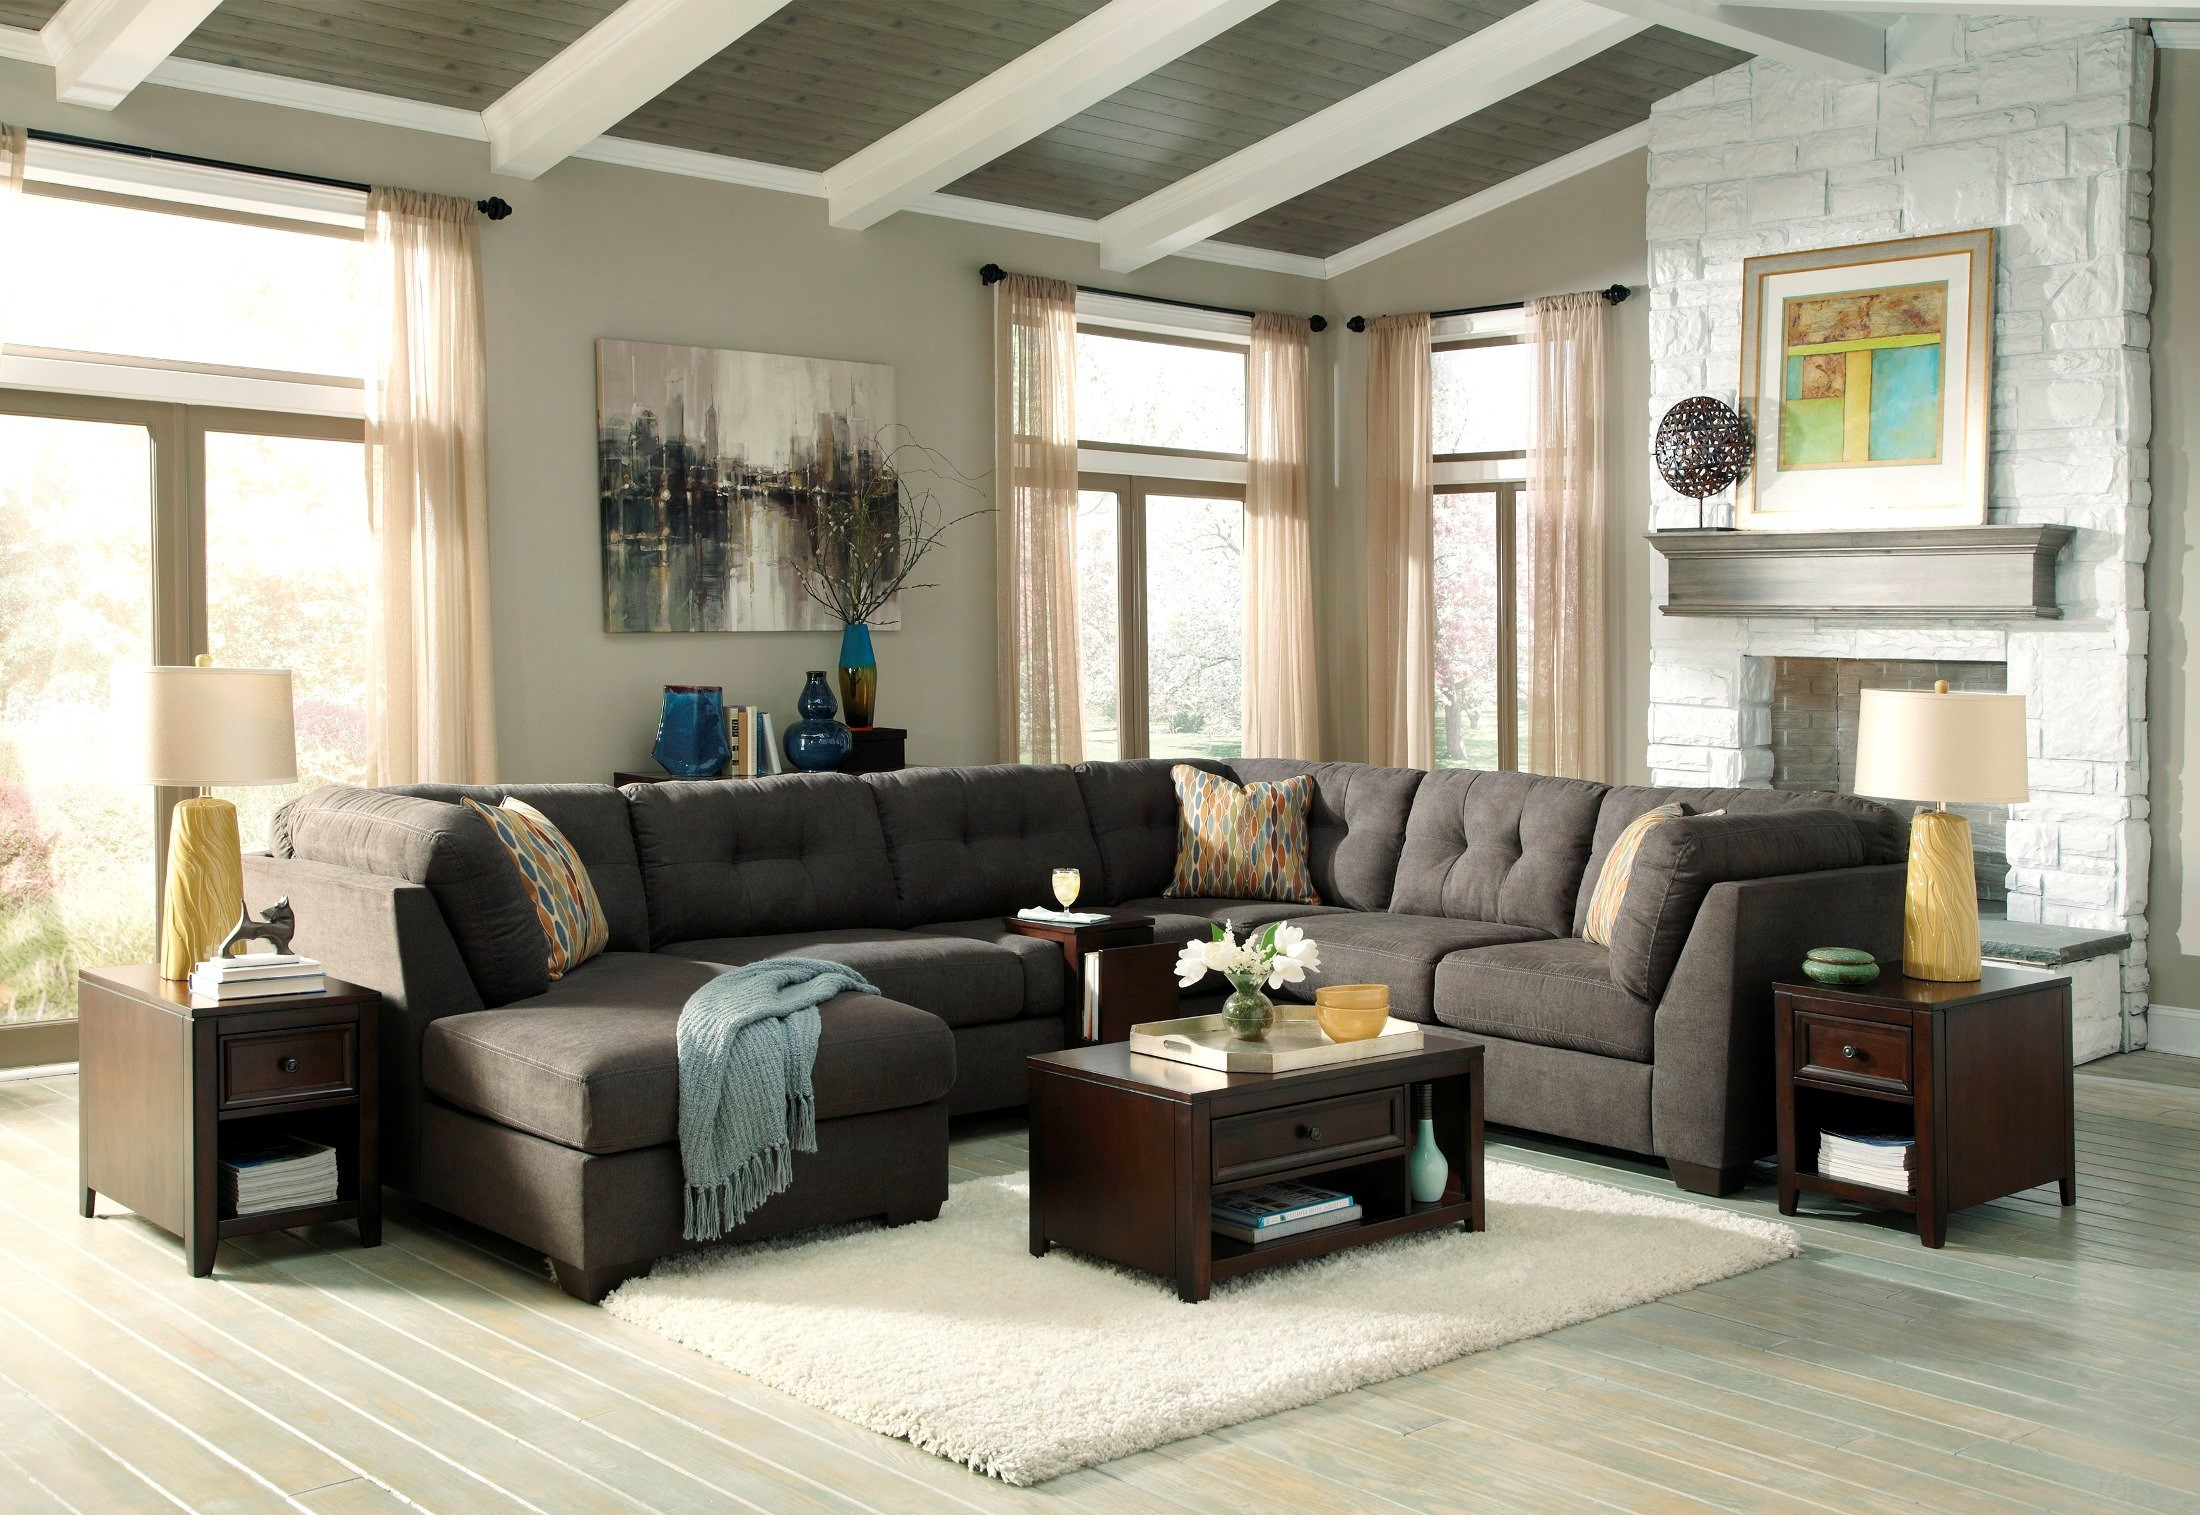 sofas design by darcy benchcraft lsg furniture signature sofa item michael sectional ashley arms with sweeping cafe contemporary pillow collections s warehouse